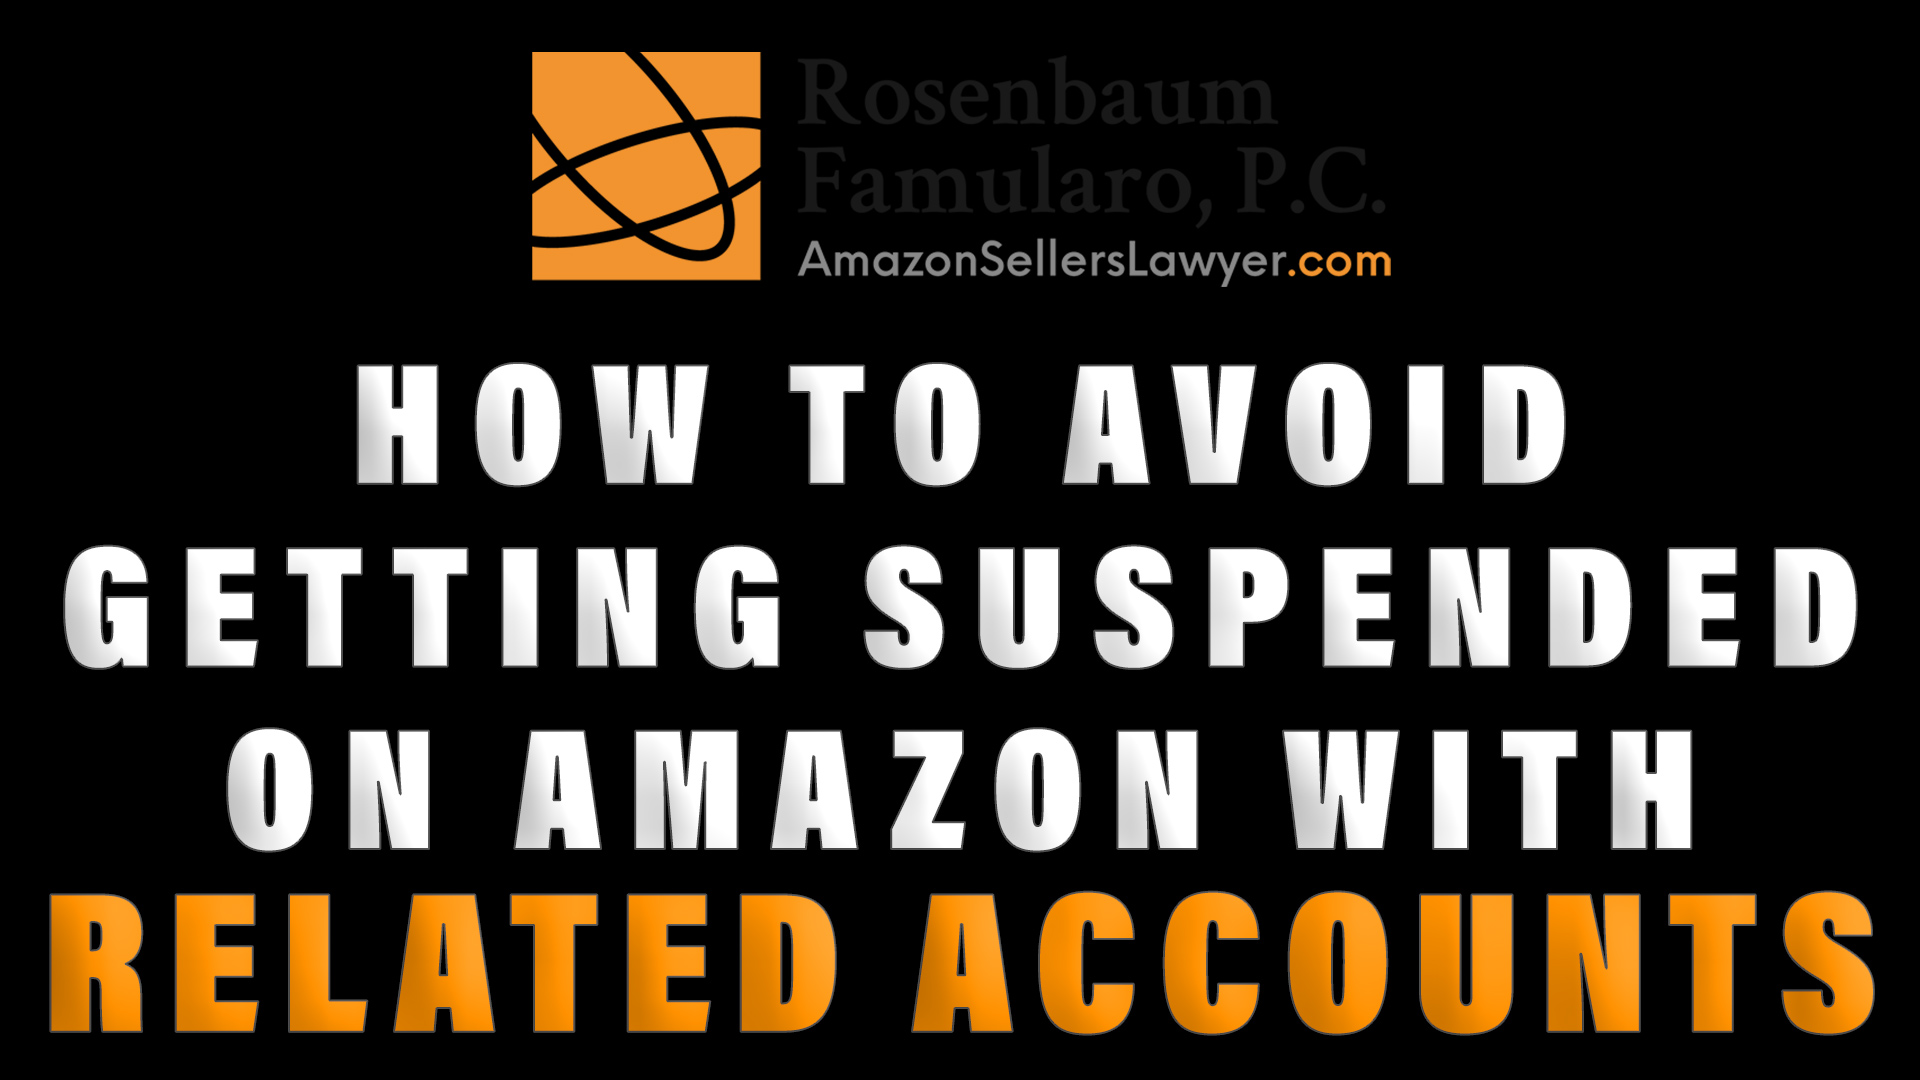 How to Avoid Getting Suspended on Amazon with Related Accounts